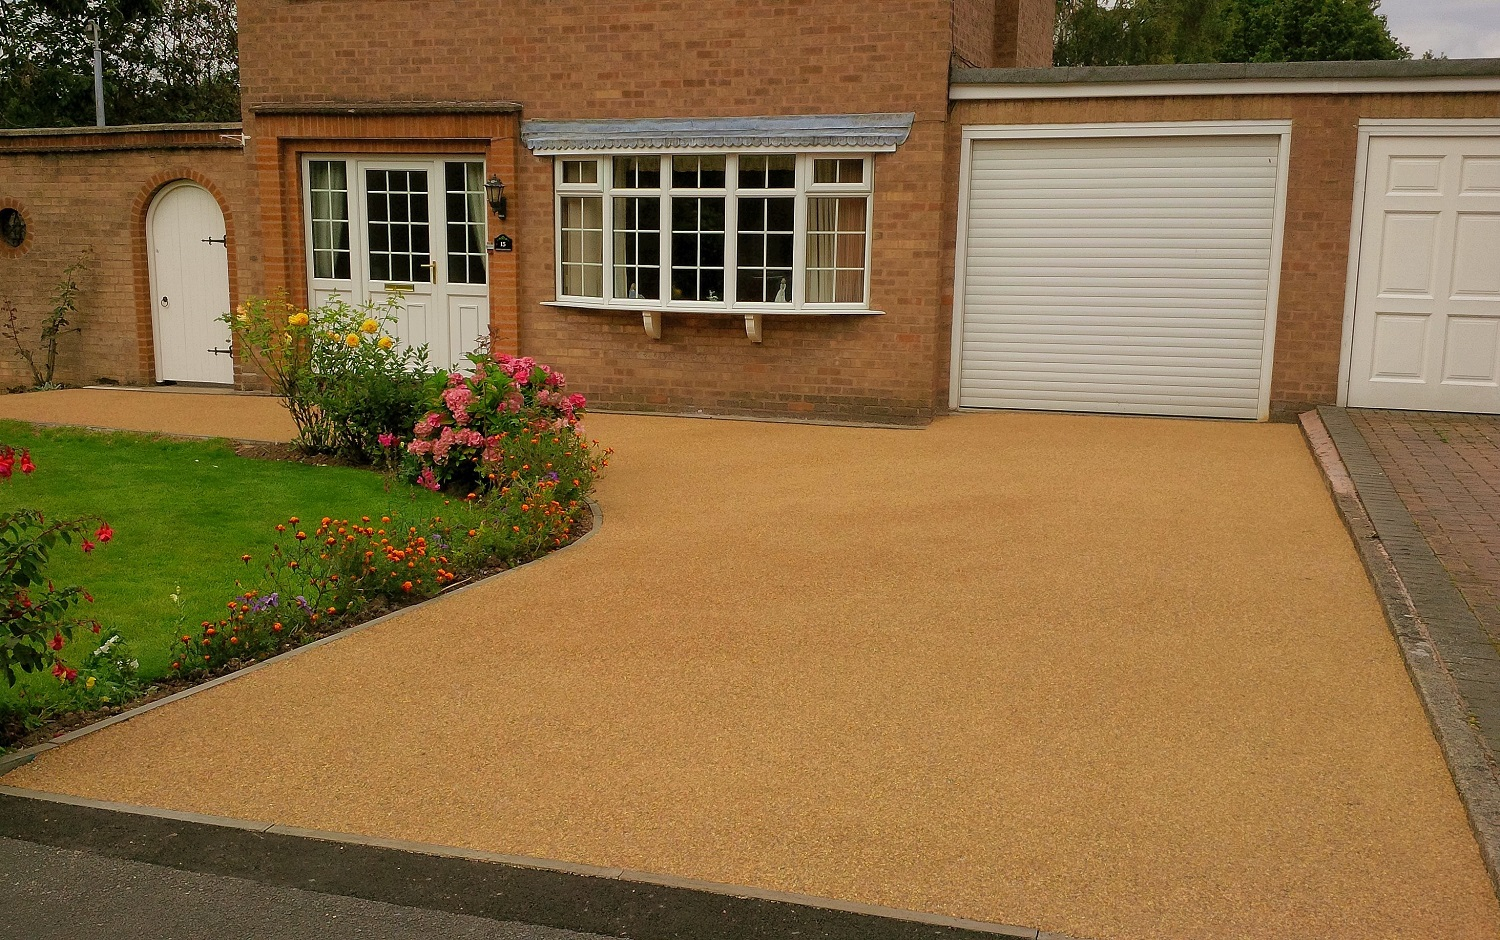 B2 - Resin Bonded Driveway Surfacing at Wingerworth in Chesterfield